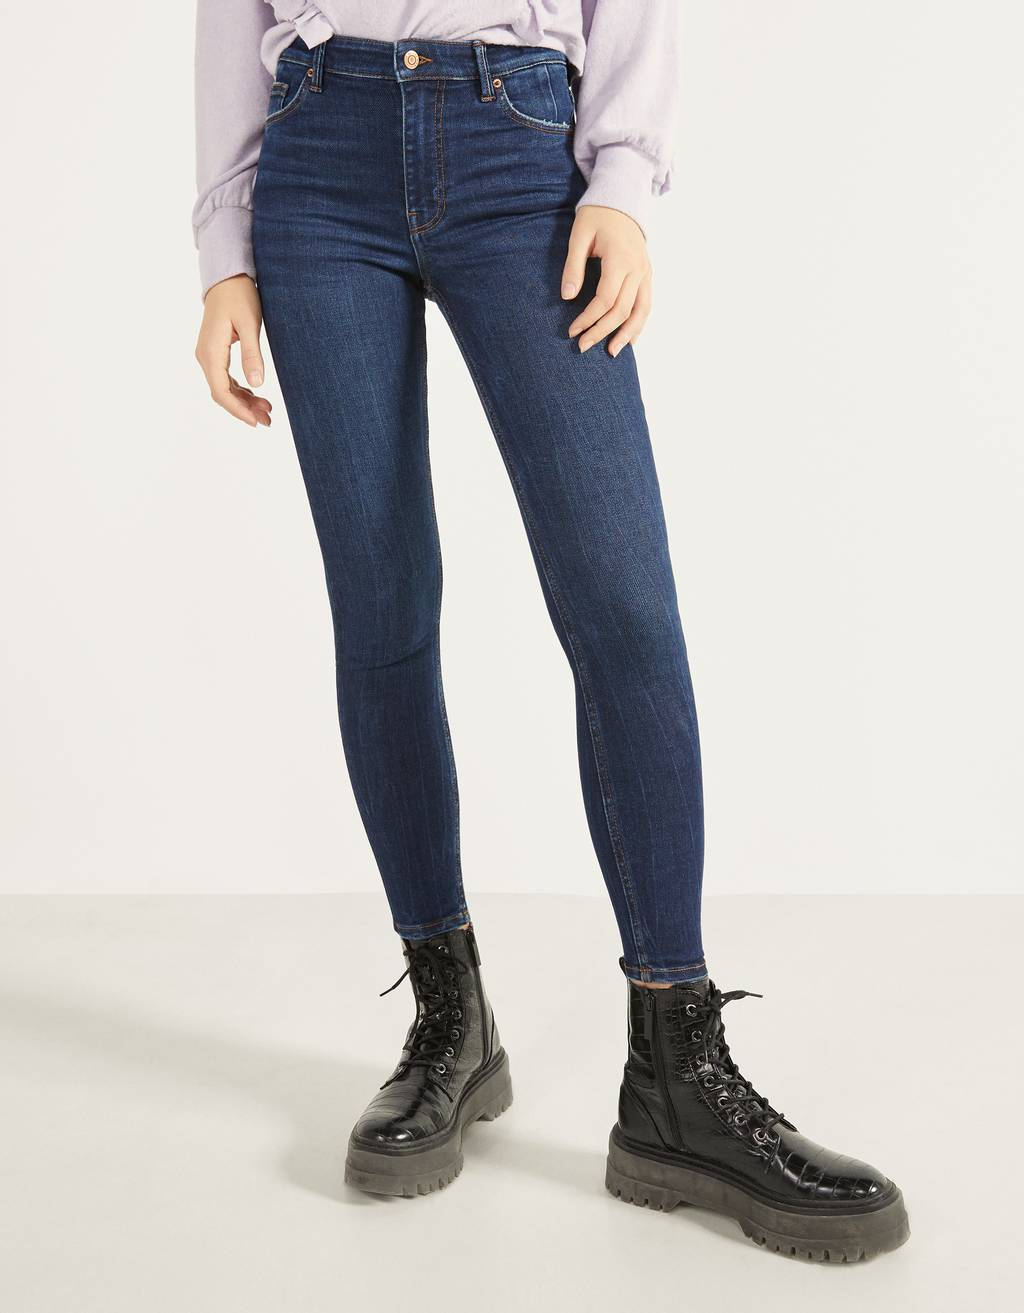 Jeans Skinny Fit High Waist